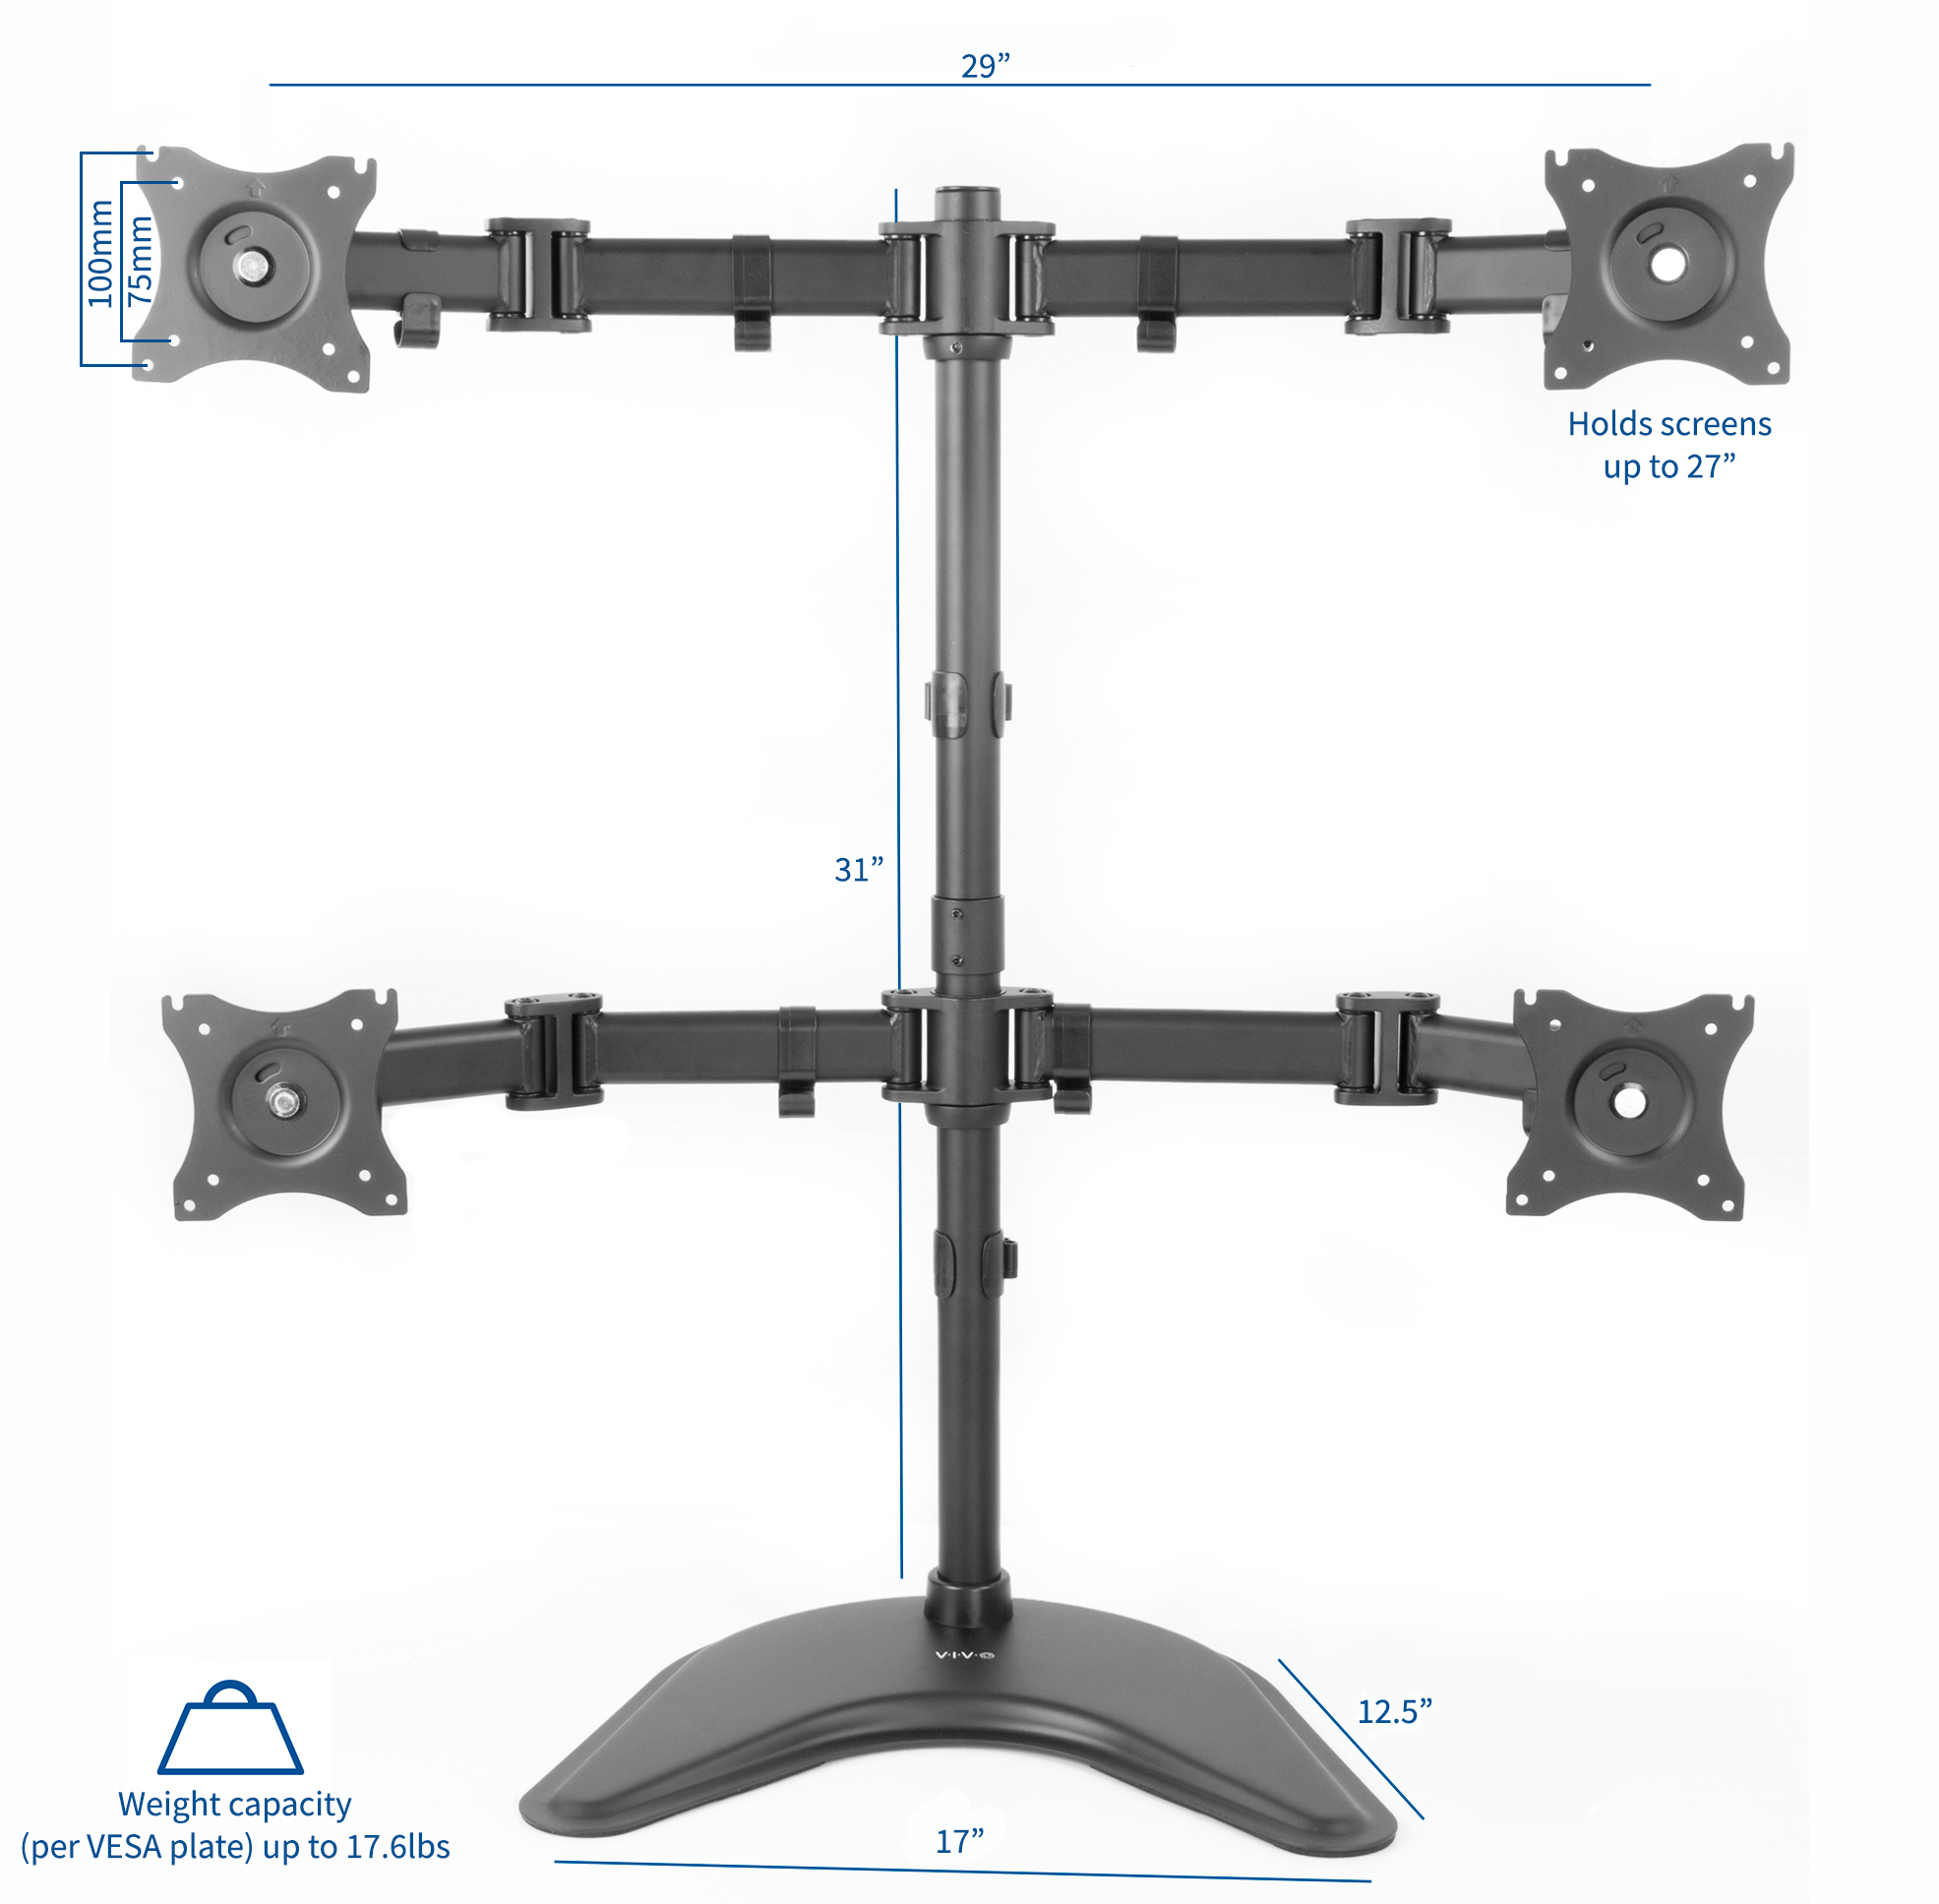 """USED Quad Monitor Mount Adjustable Desk Free Stand for 4 LCD Screens up to 27/"""""""